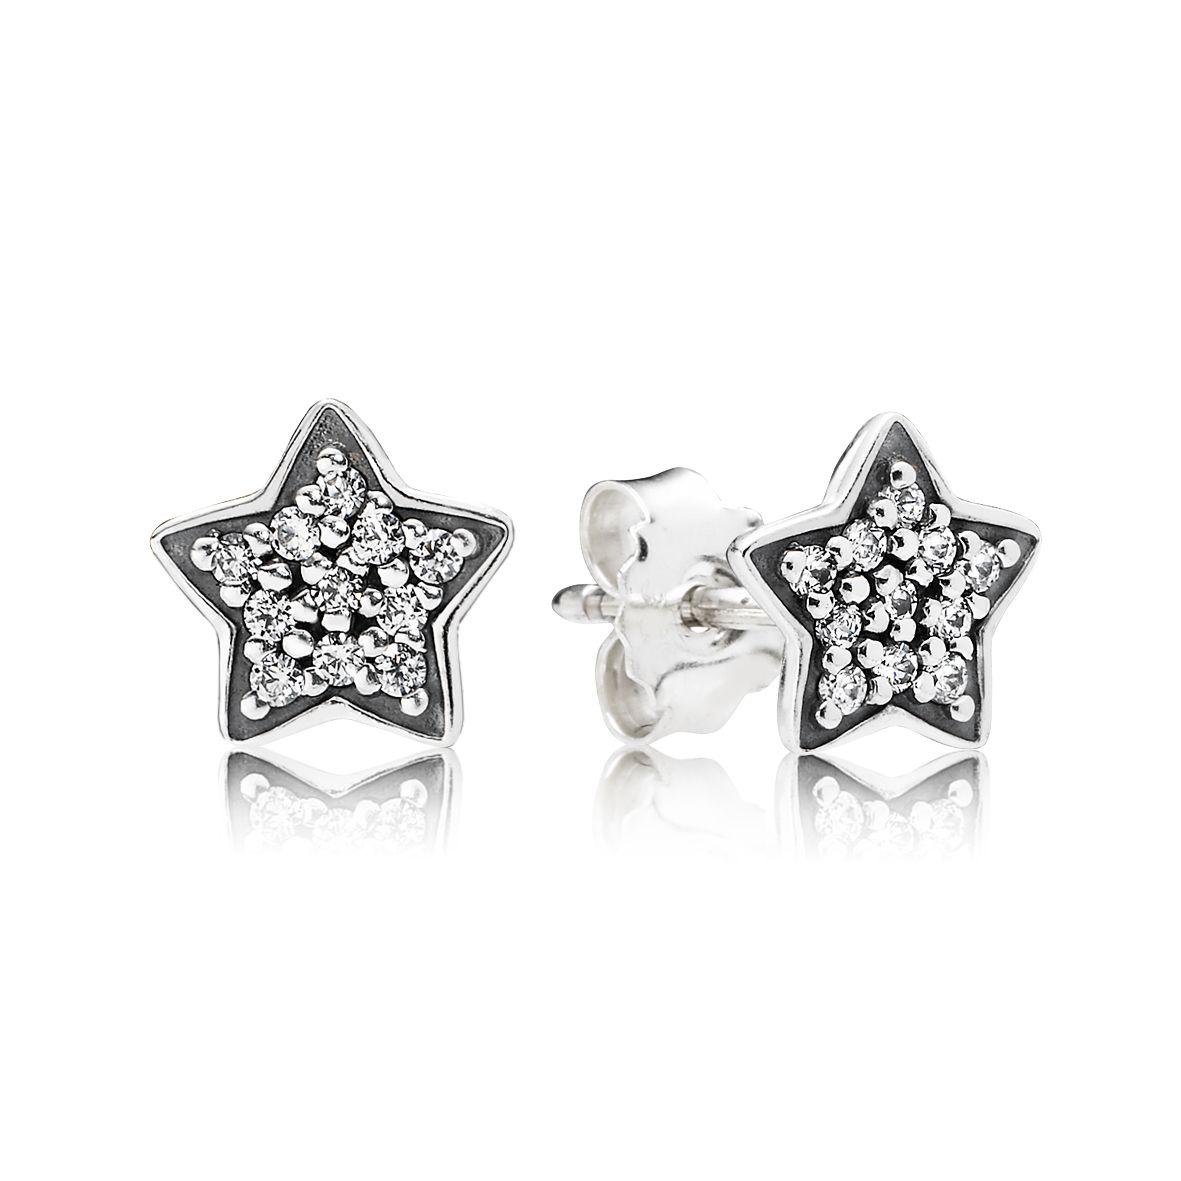 Star silver stud earrings with cubic zirconia